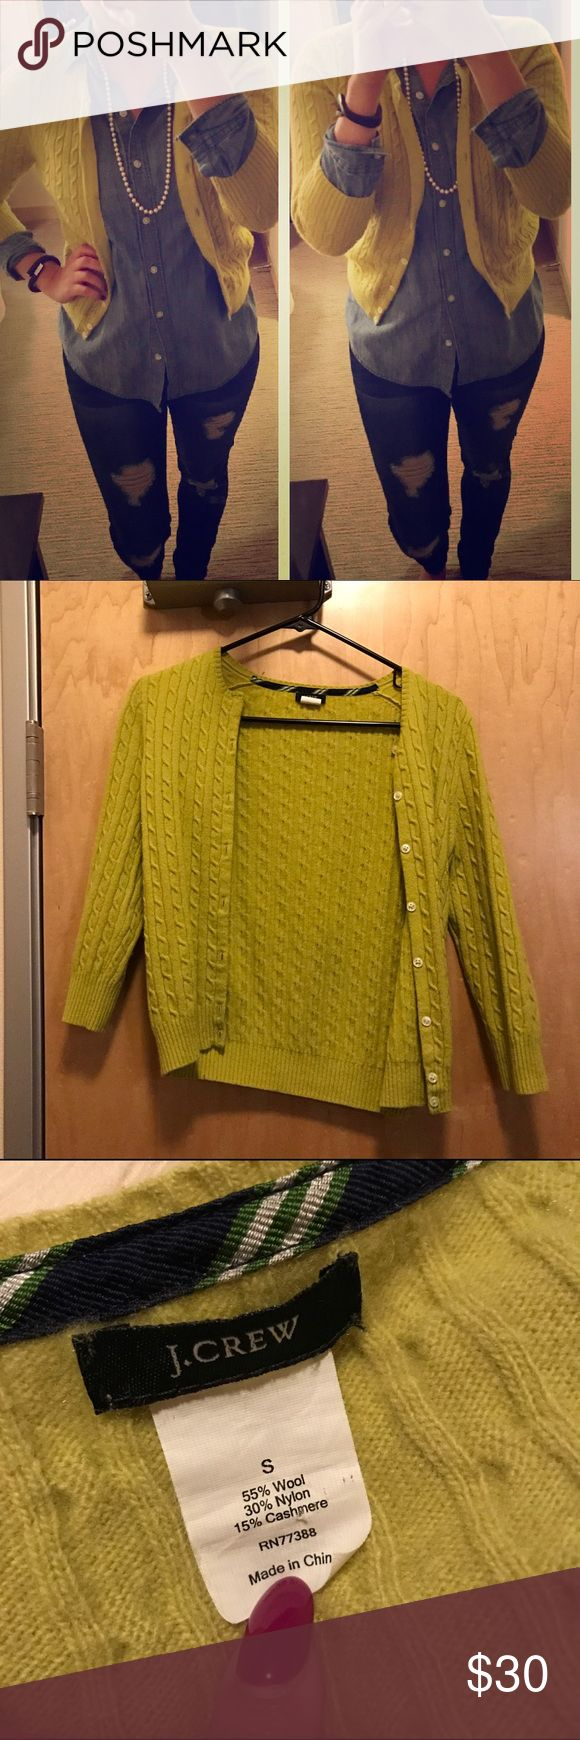 J. Crew Chartreuse Cardigan Adorable button up cardigan from J. Crew, gently used/worn just a handful of times. Very soft and beautiful color! J. Crew Sweaters Cardigans